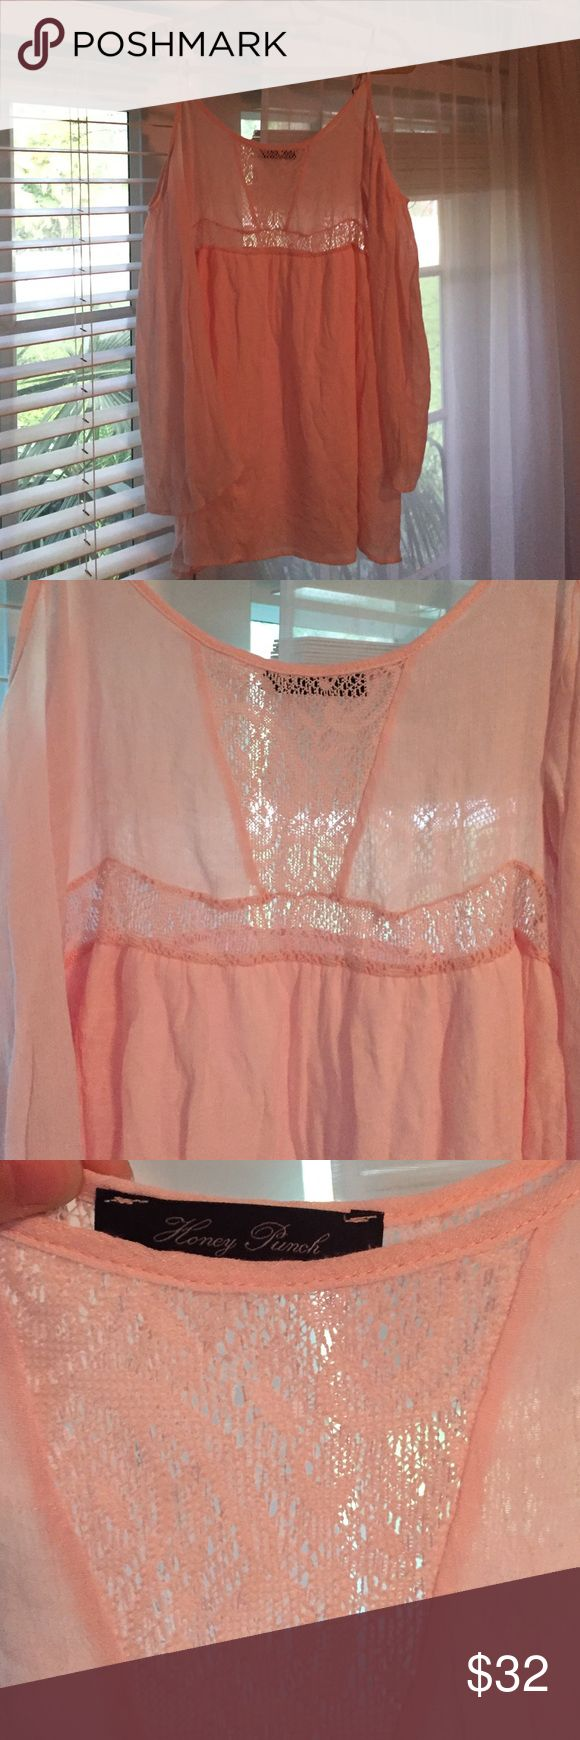 🌸Blush Boho Long sleeve dress🌸 Long sleeve dress, off the shoulder, ordered from nasty gal. Needs to be steamed or ironed but other than that in impeccable condition (worn once). Features crochet lace cutout detail, cold shoulder design and adjustable spaghetti straps. Unlined. It's by Nasty Gal but Sabo skirt is tagged for preference/exposure Sabo Skirt Dresses Long Sleeve